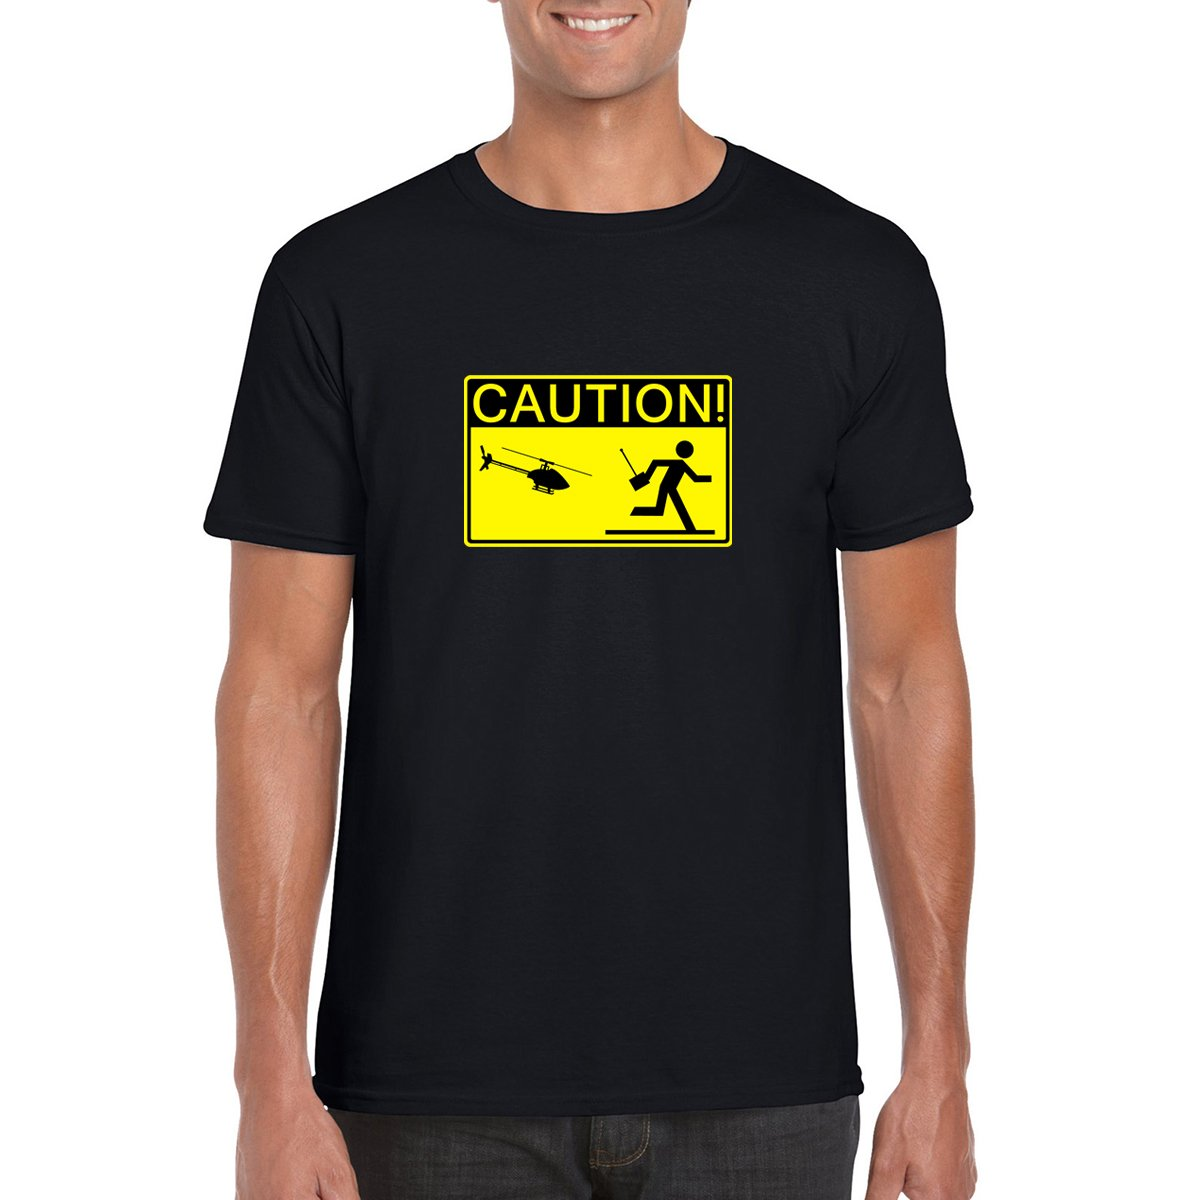 CAUTION! HELICOPTER PILOT T-Shirt